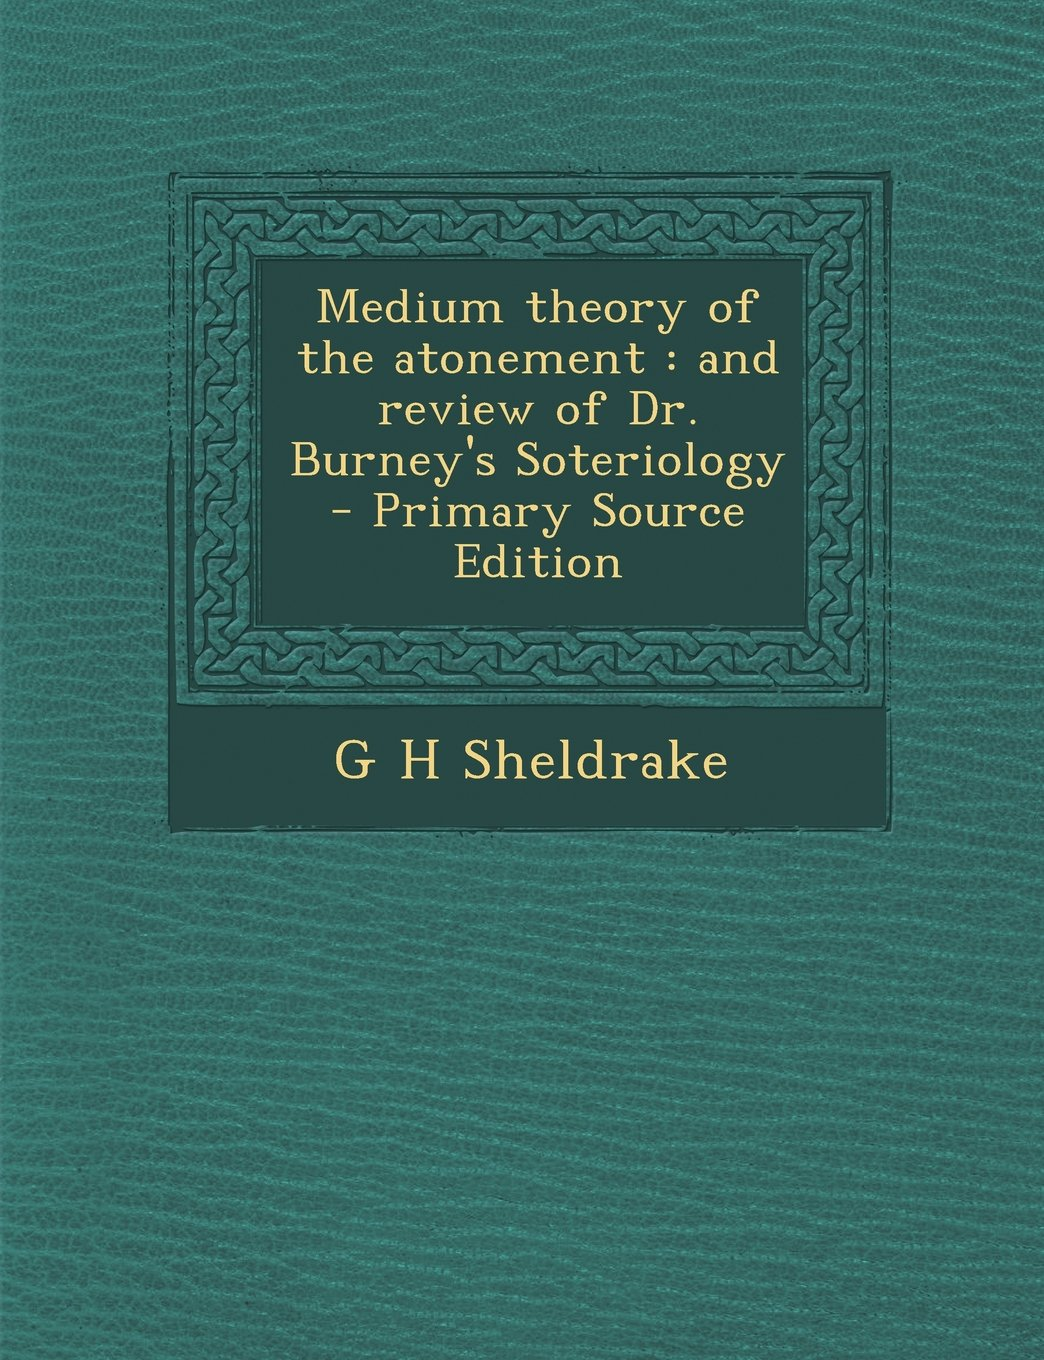 Download Medium theory of the atonement: and review of Dr. Burney's Soteriology ePub fb2 book